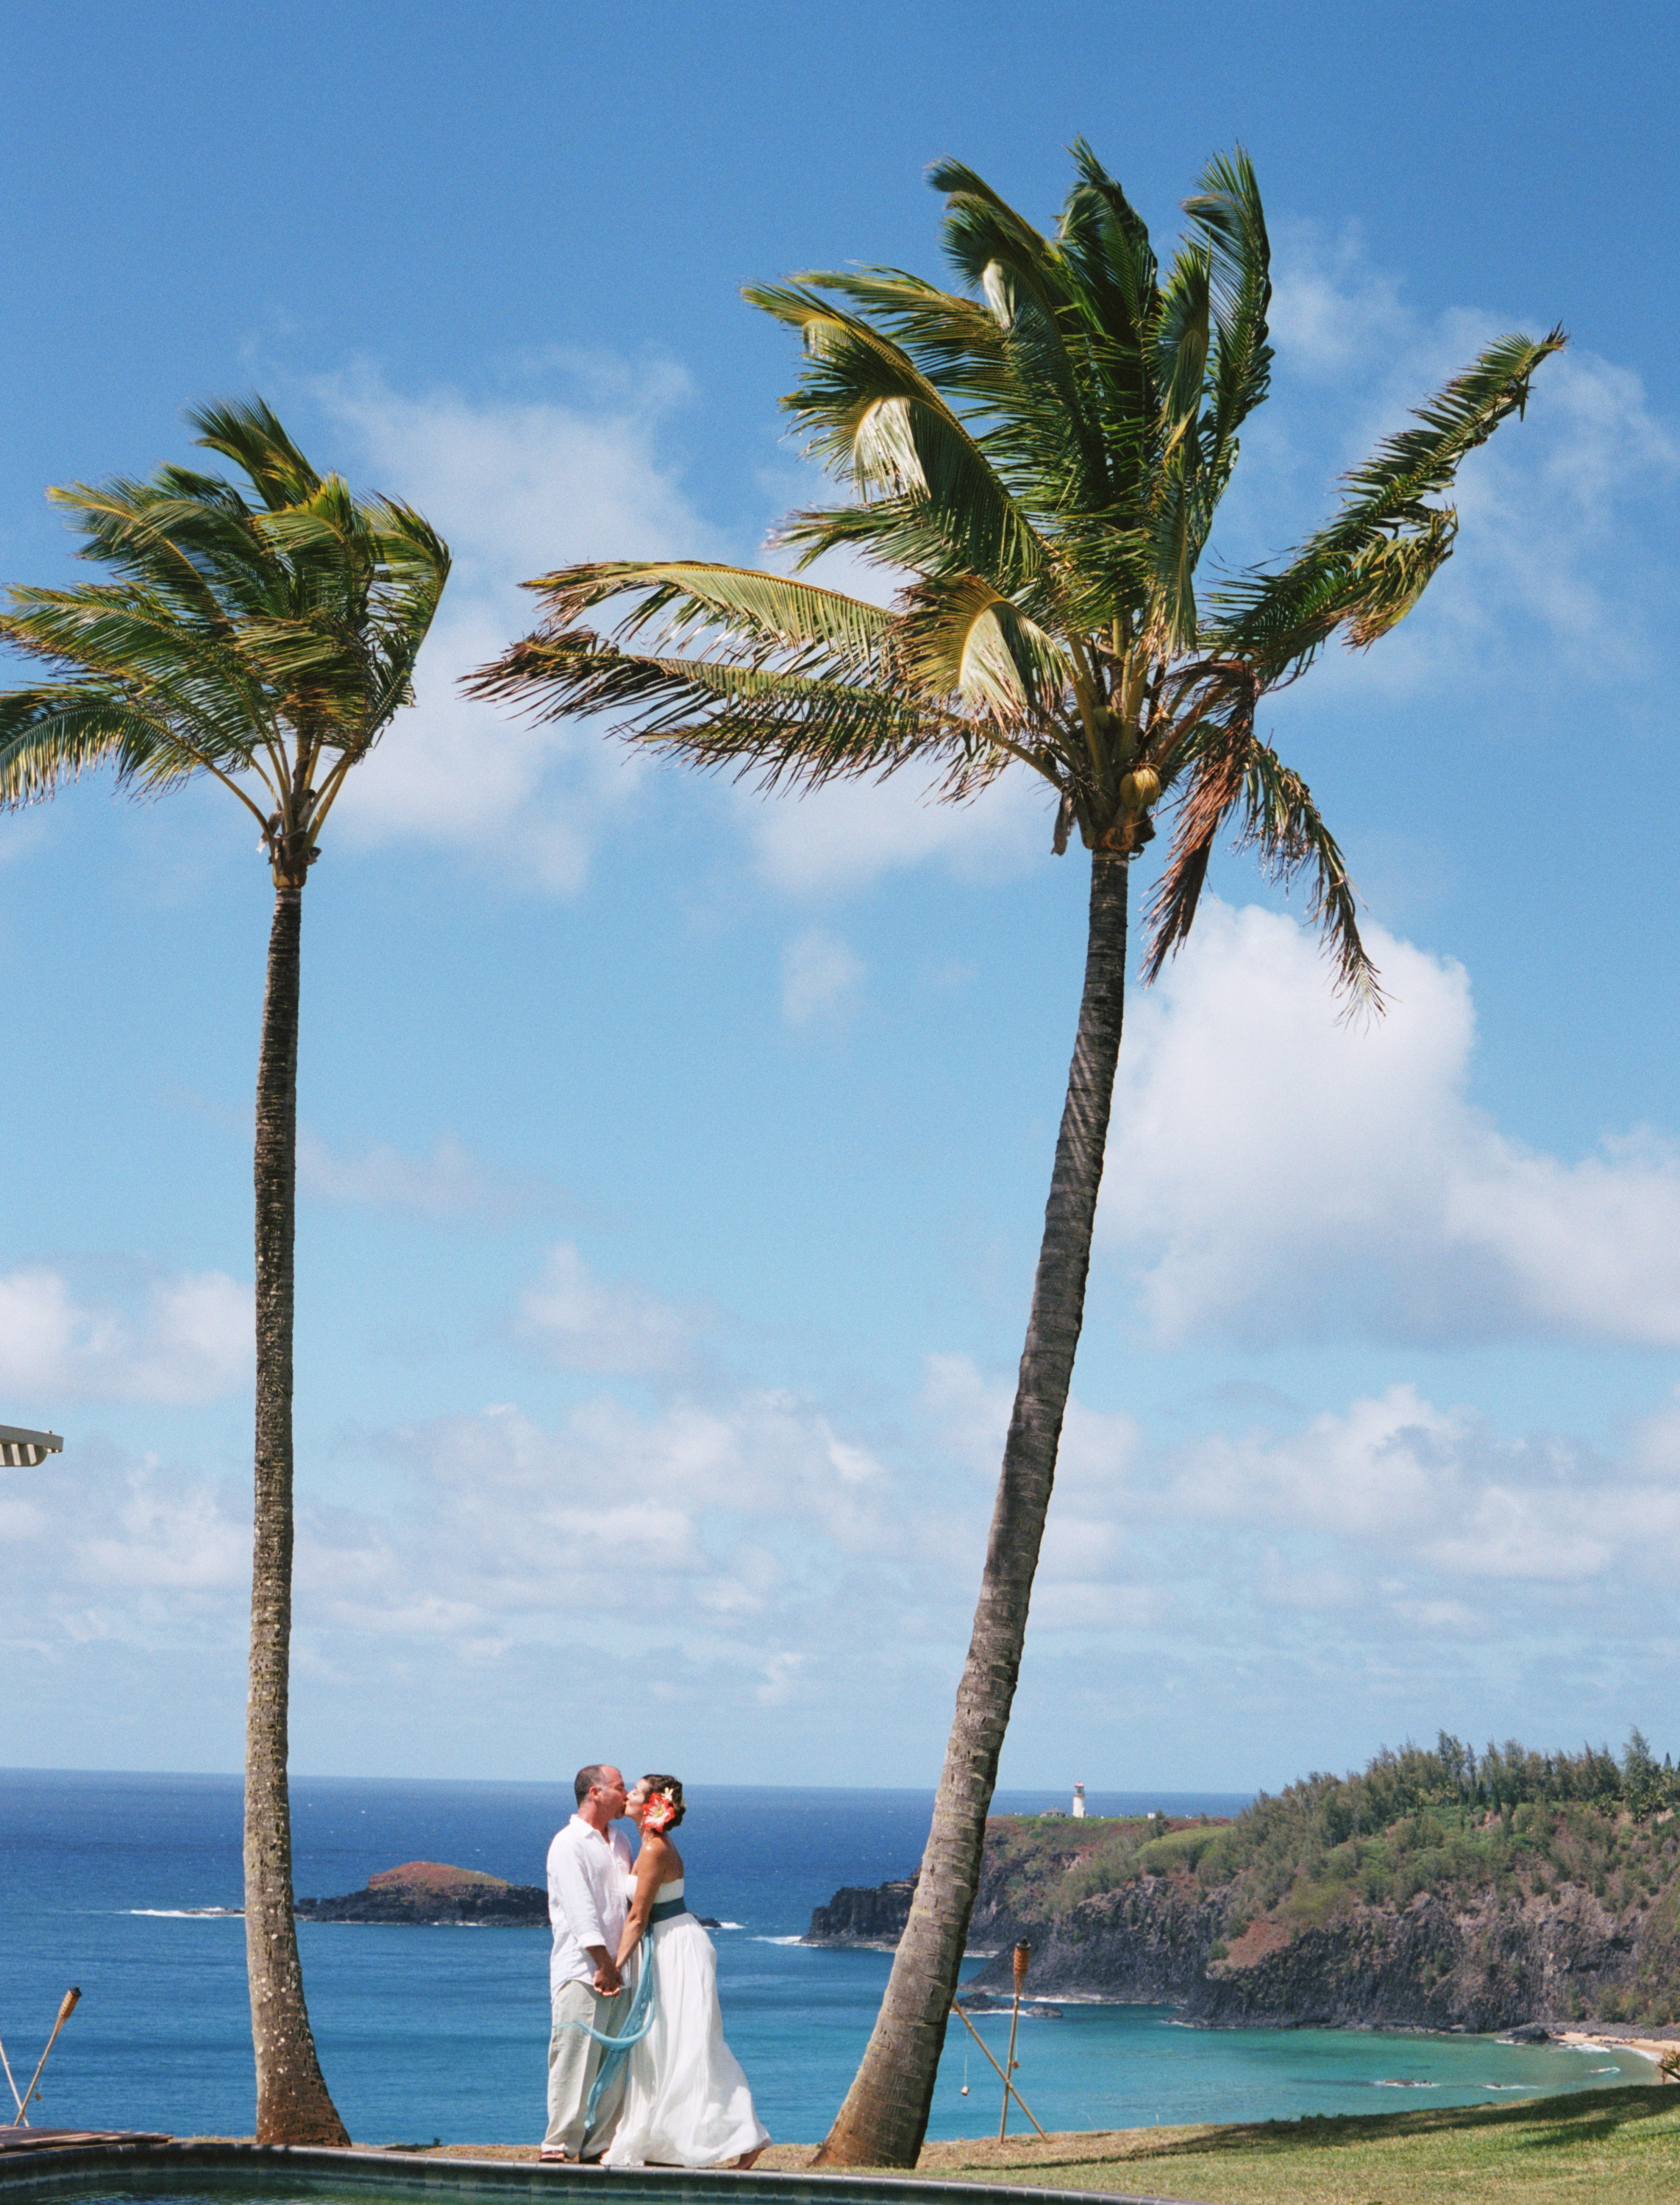 Destinations, orange, blue, Destination Weddings, Hawaii, Beach, Wedding, Colorful, Destination wedding, Palm trees, Kissing couple, Hawaiian wedding, Kuaui